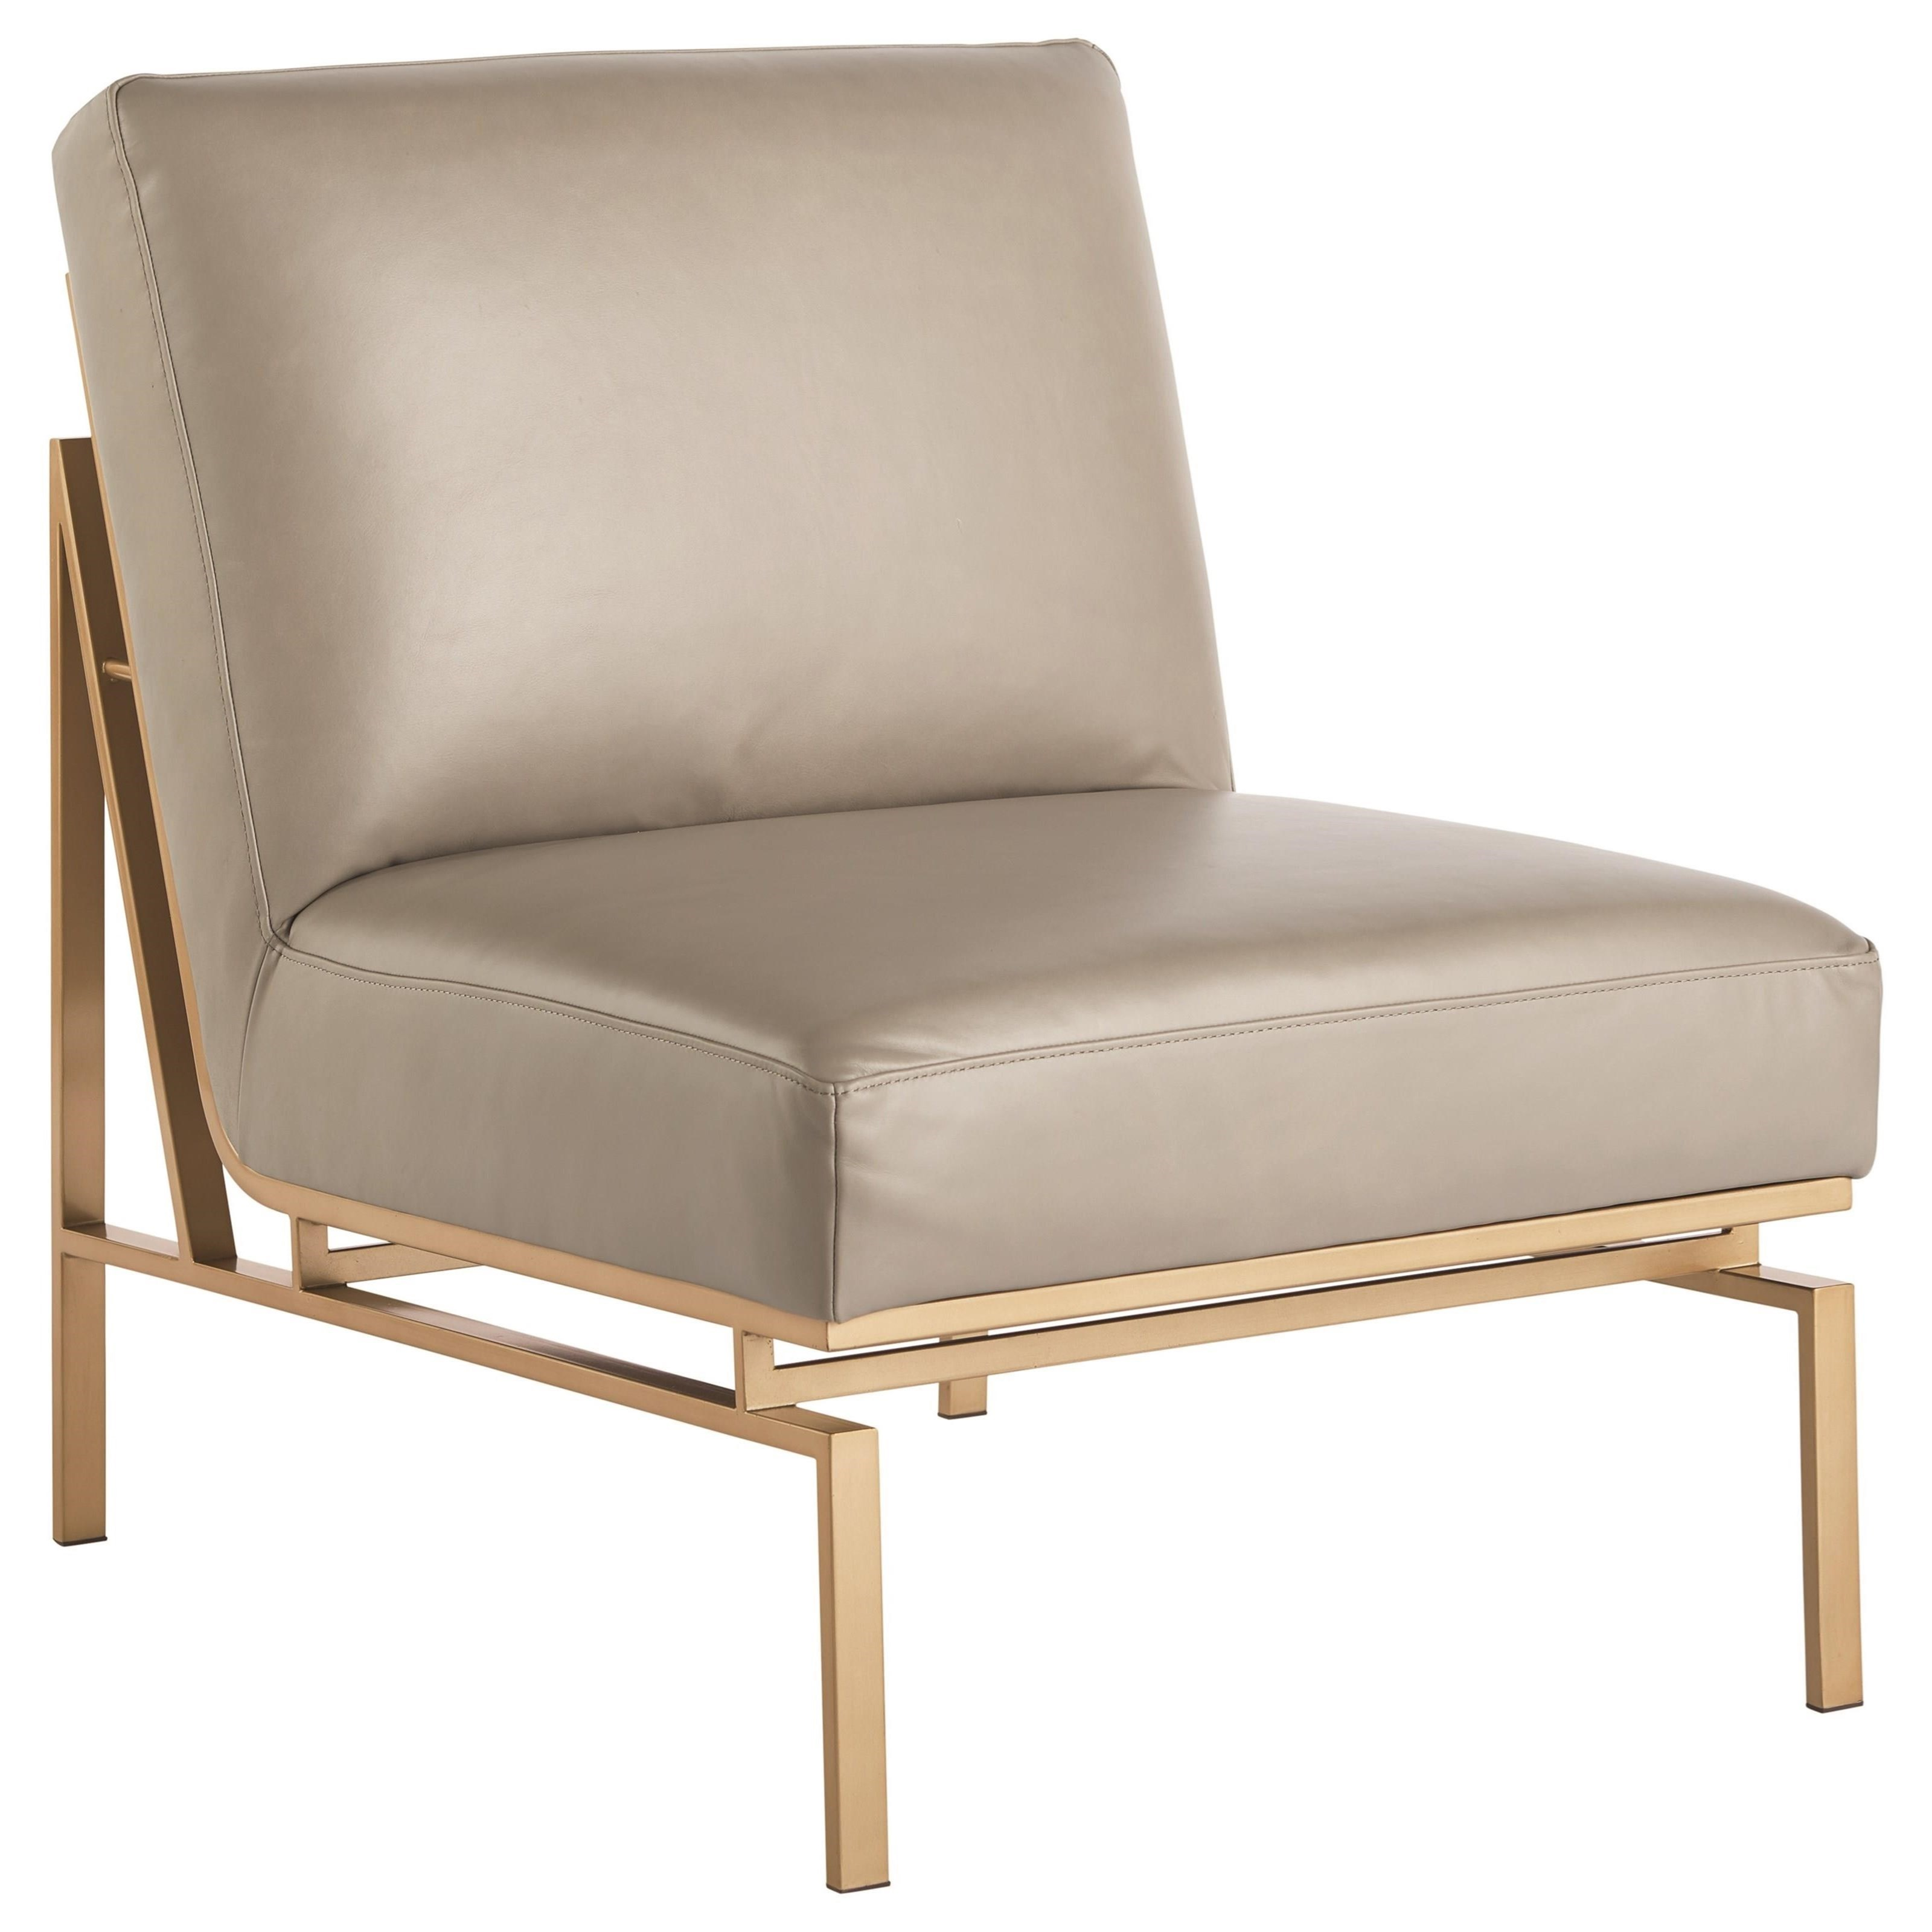 Love. Joy. Bliss.-Miranda Kerr Home Hollywood Accent Chair by Universal at Baer's Furniture